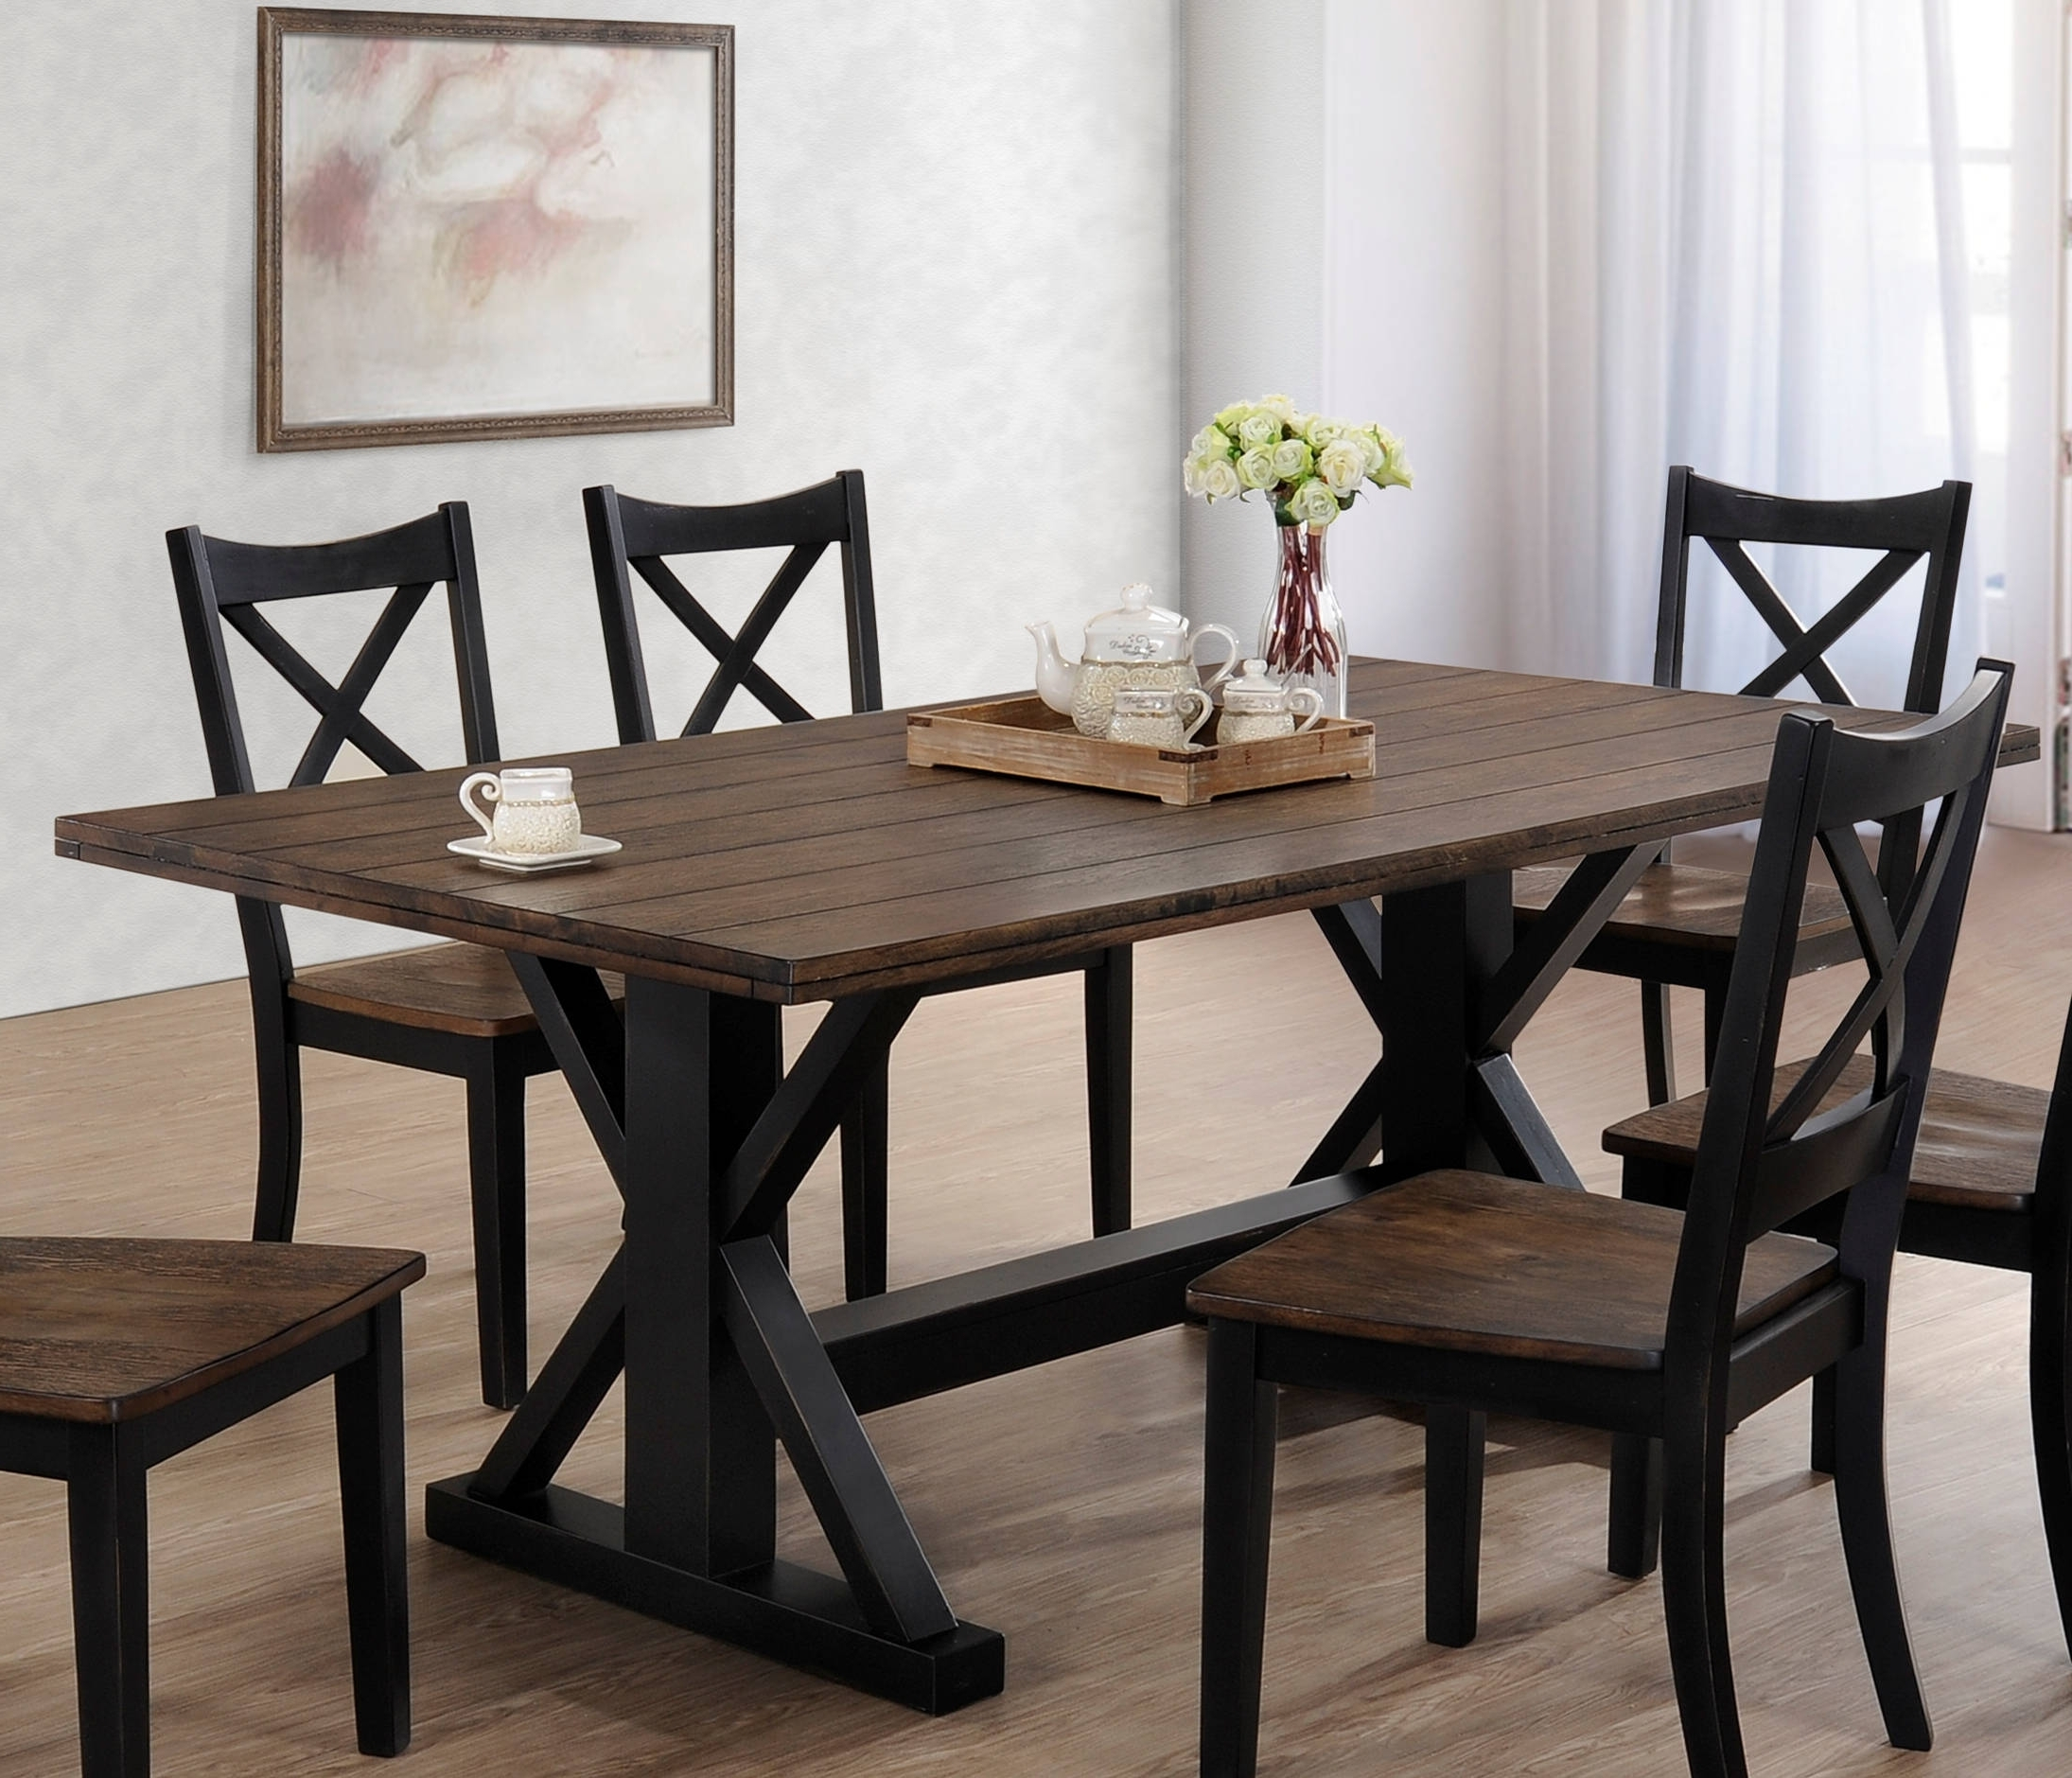 The Classy Home Regarding Rustic Oak Dining Tables (View 23 of 25)